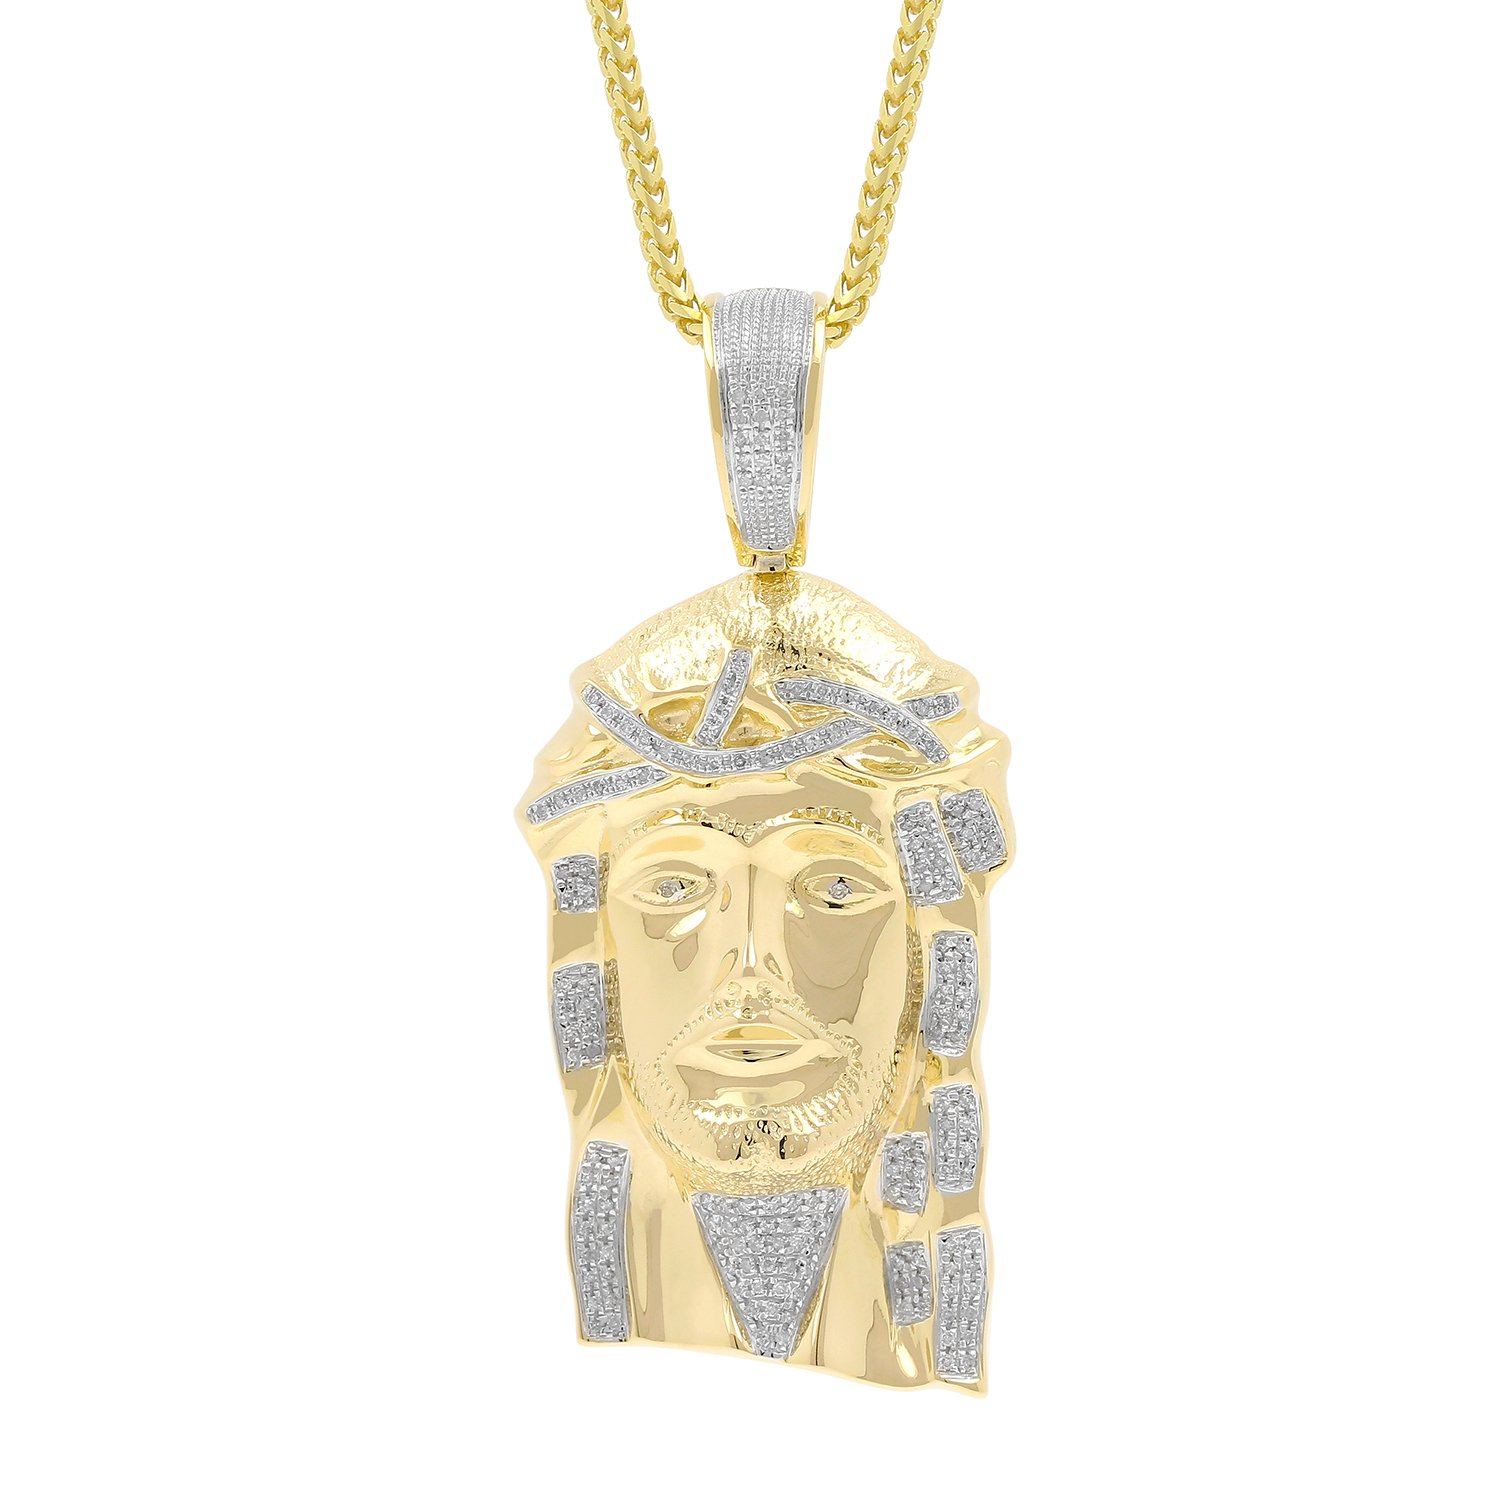 0.52ct Diamond Jesus Face Religious Mens Hip Hop Pendant in Yellow Gold Over 925 Silver (I-J, I1-I2) by Isha Luxe-Hip Hop Bling (Image #1)